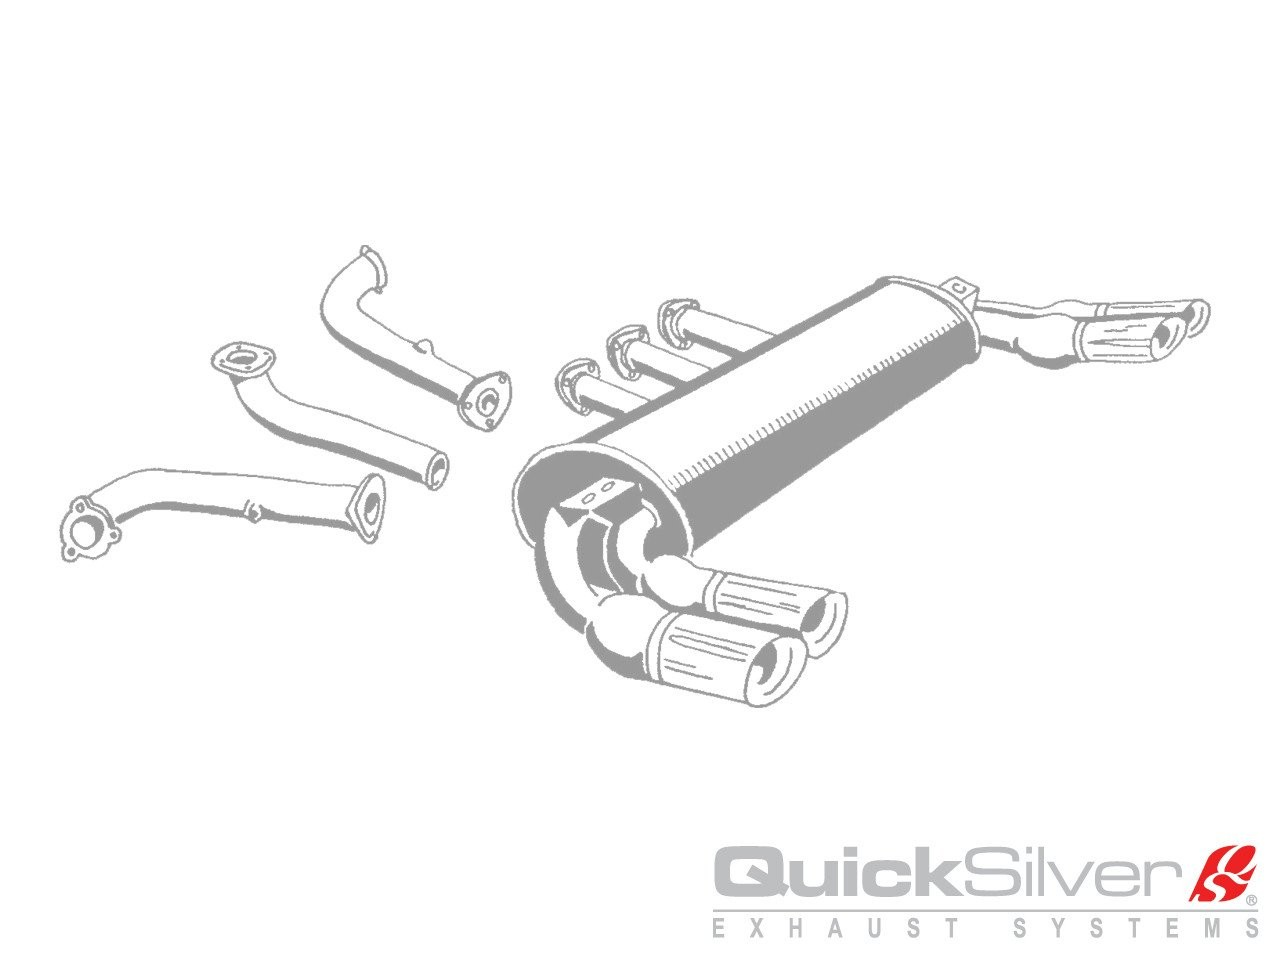 Quicksilver Exhausts Ferrari 288 Gto Stainless Steel